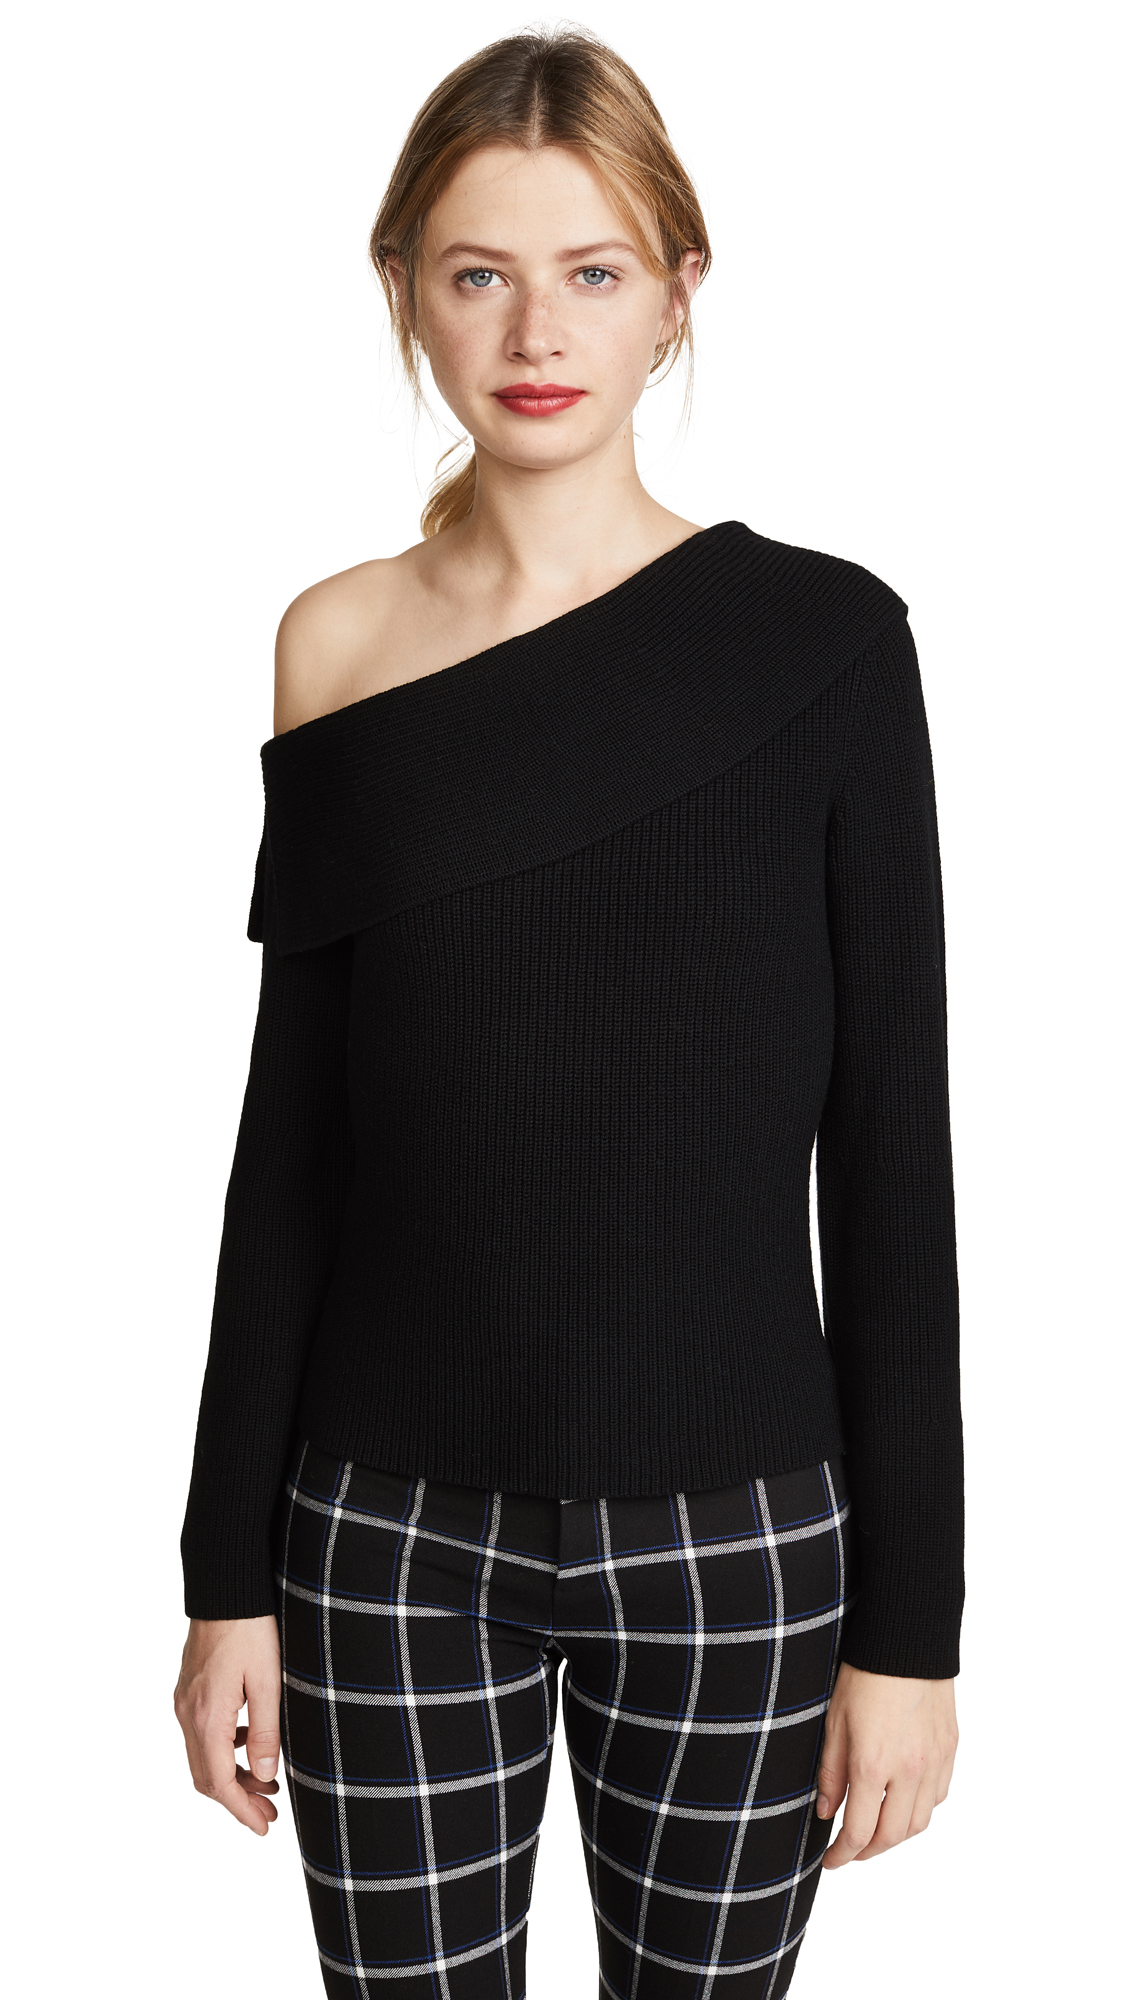 Theory One Shoulder Fold Over Pullover - Black/Black